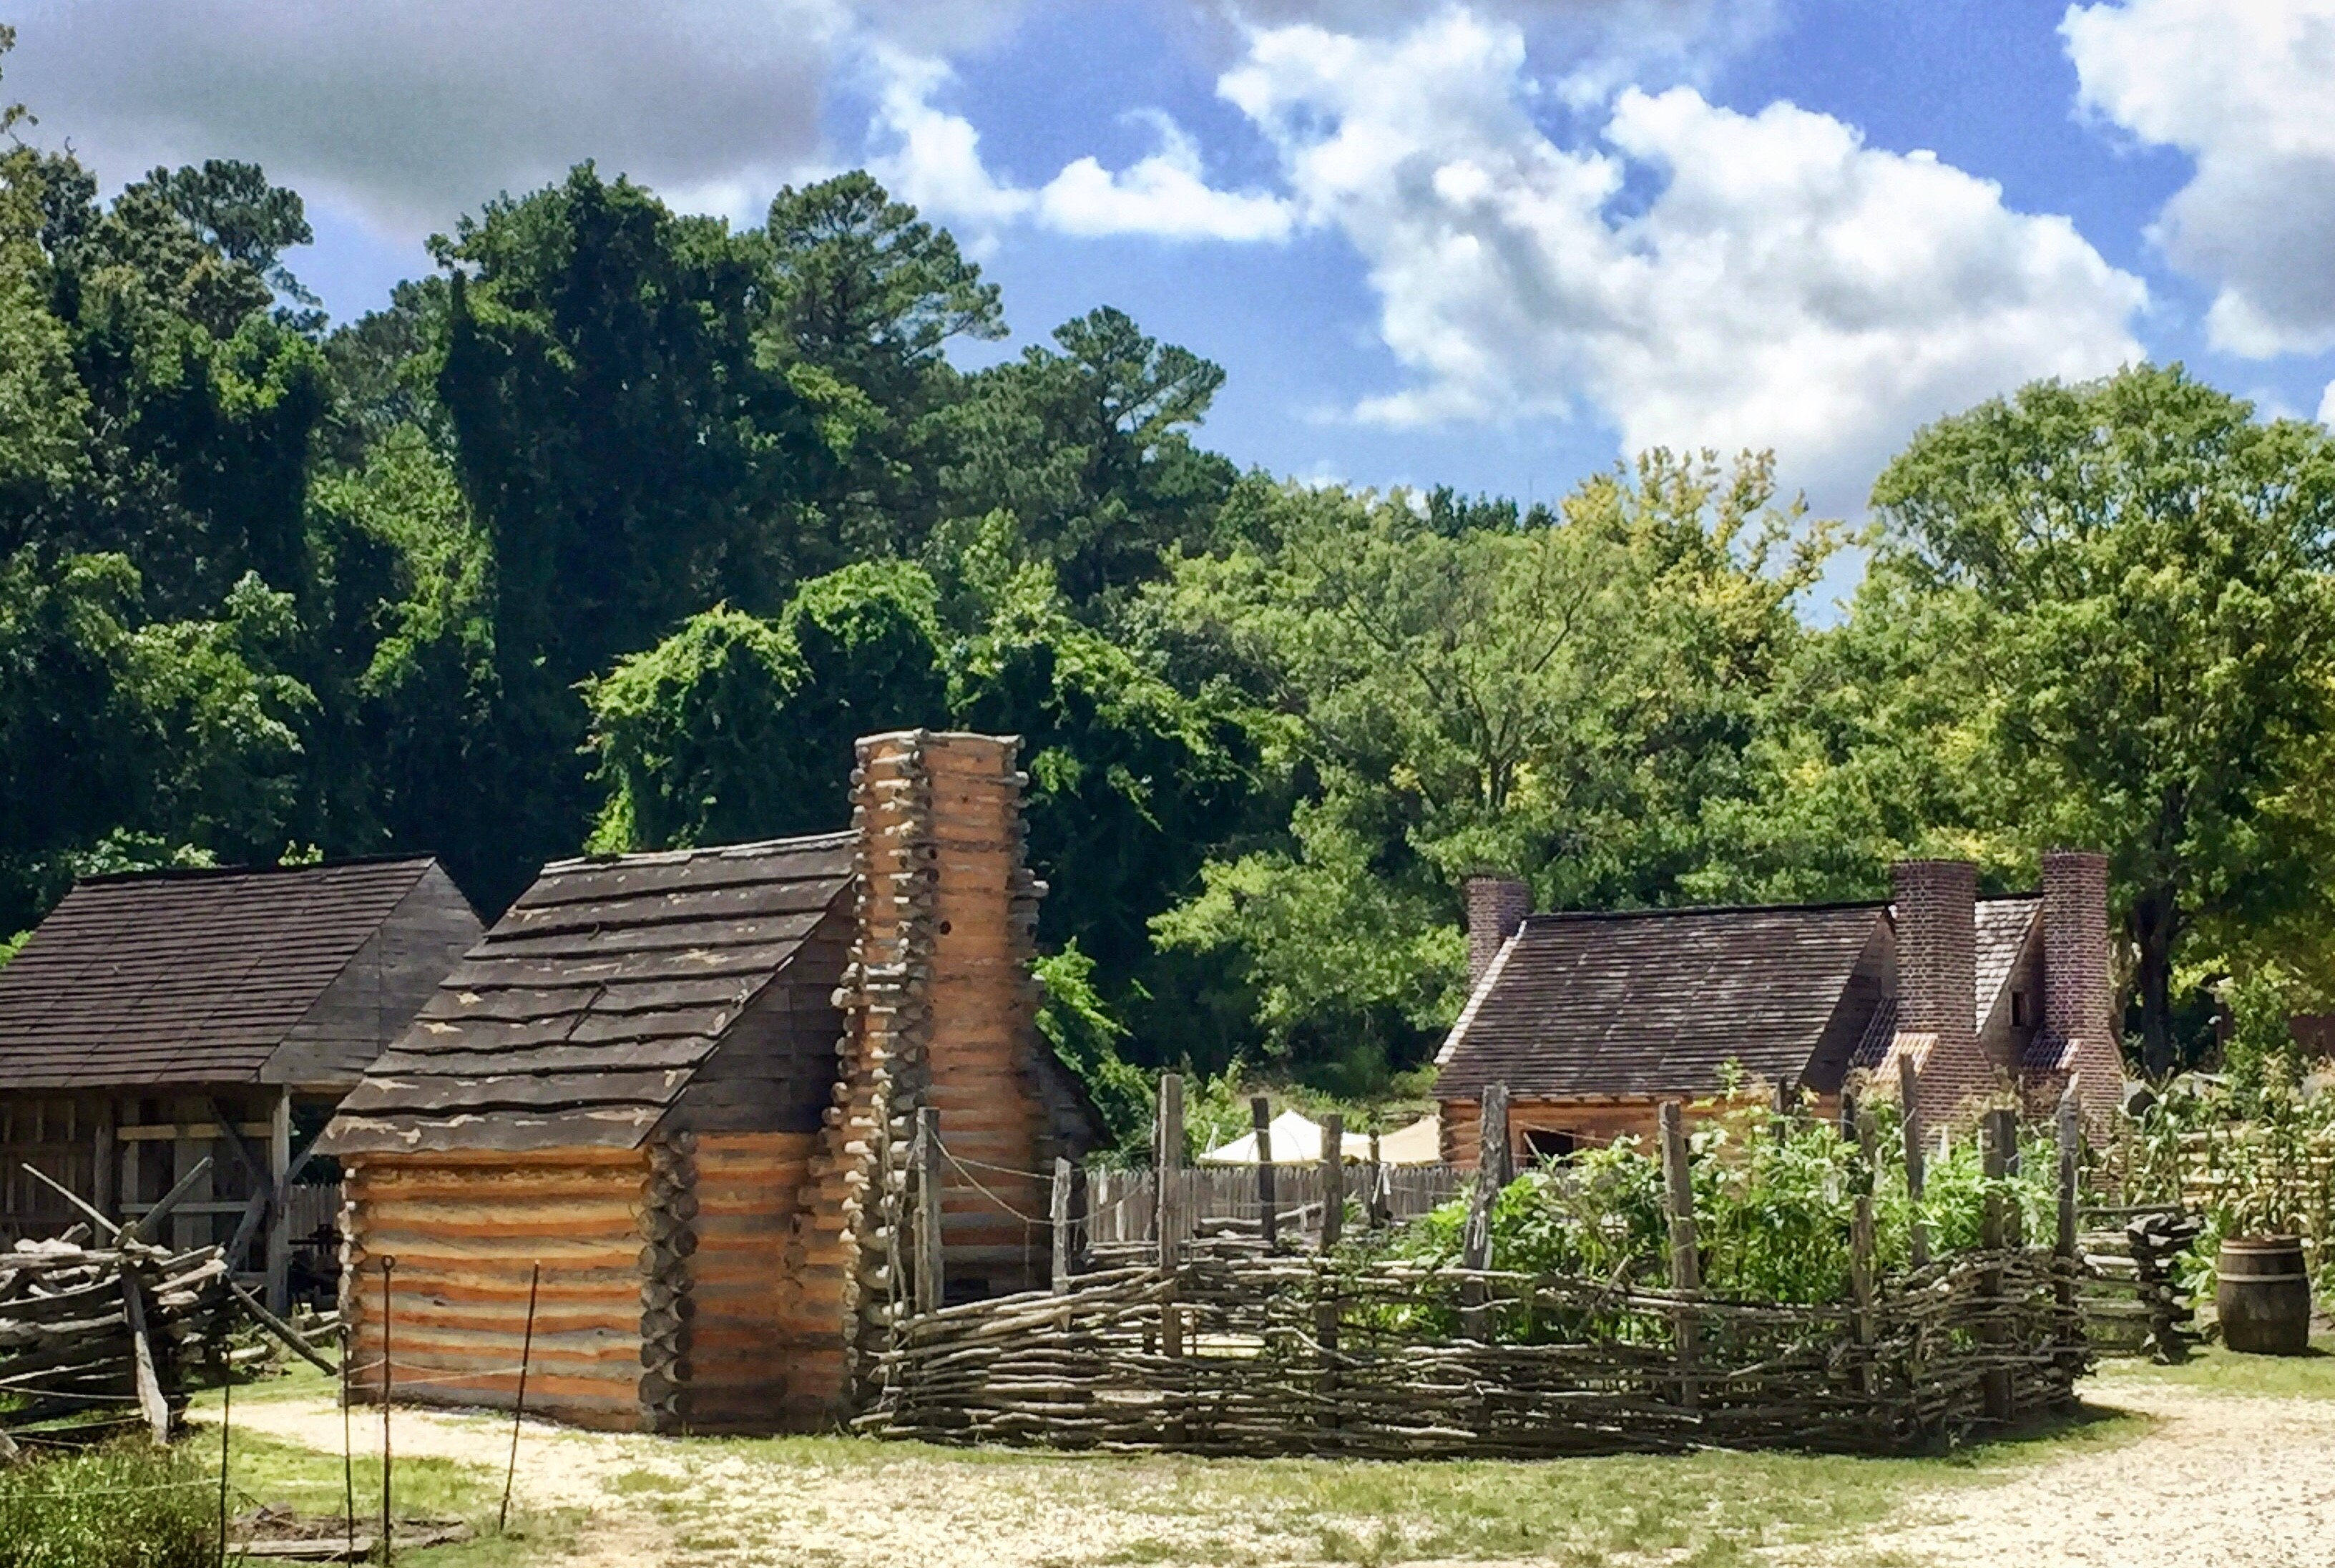 Slave quarters at the Museum of the American Revolution at Yorktown.